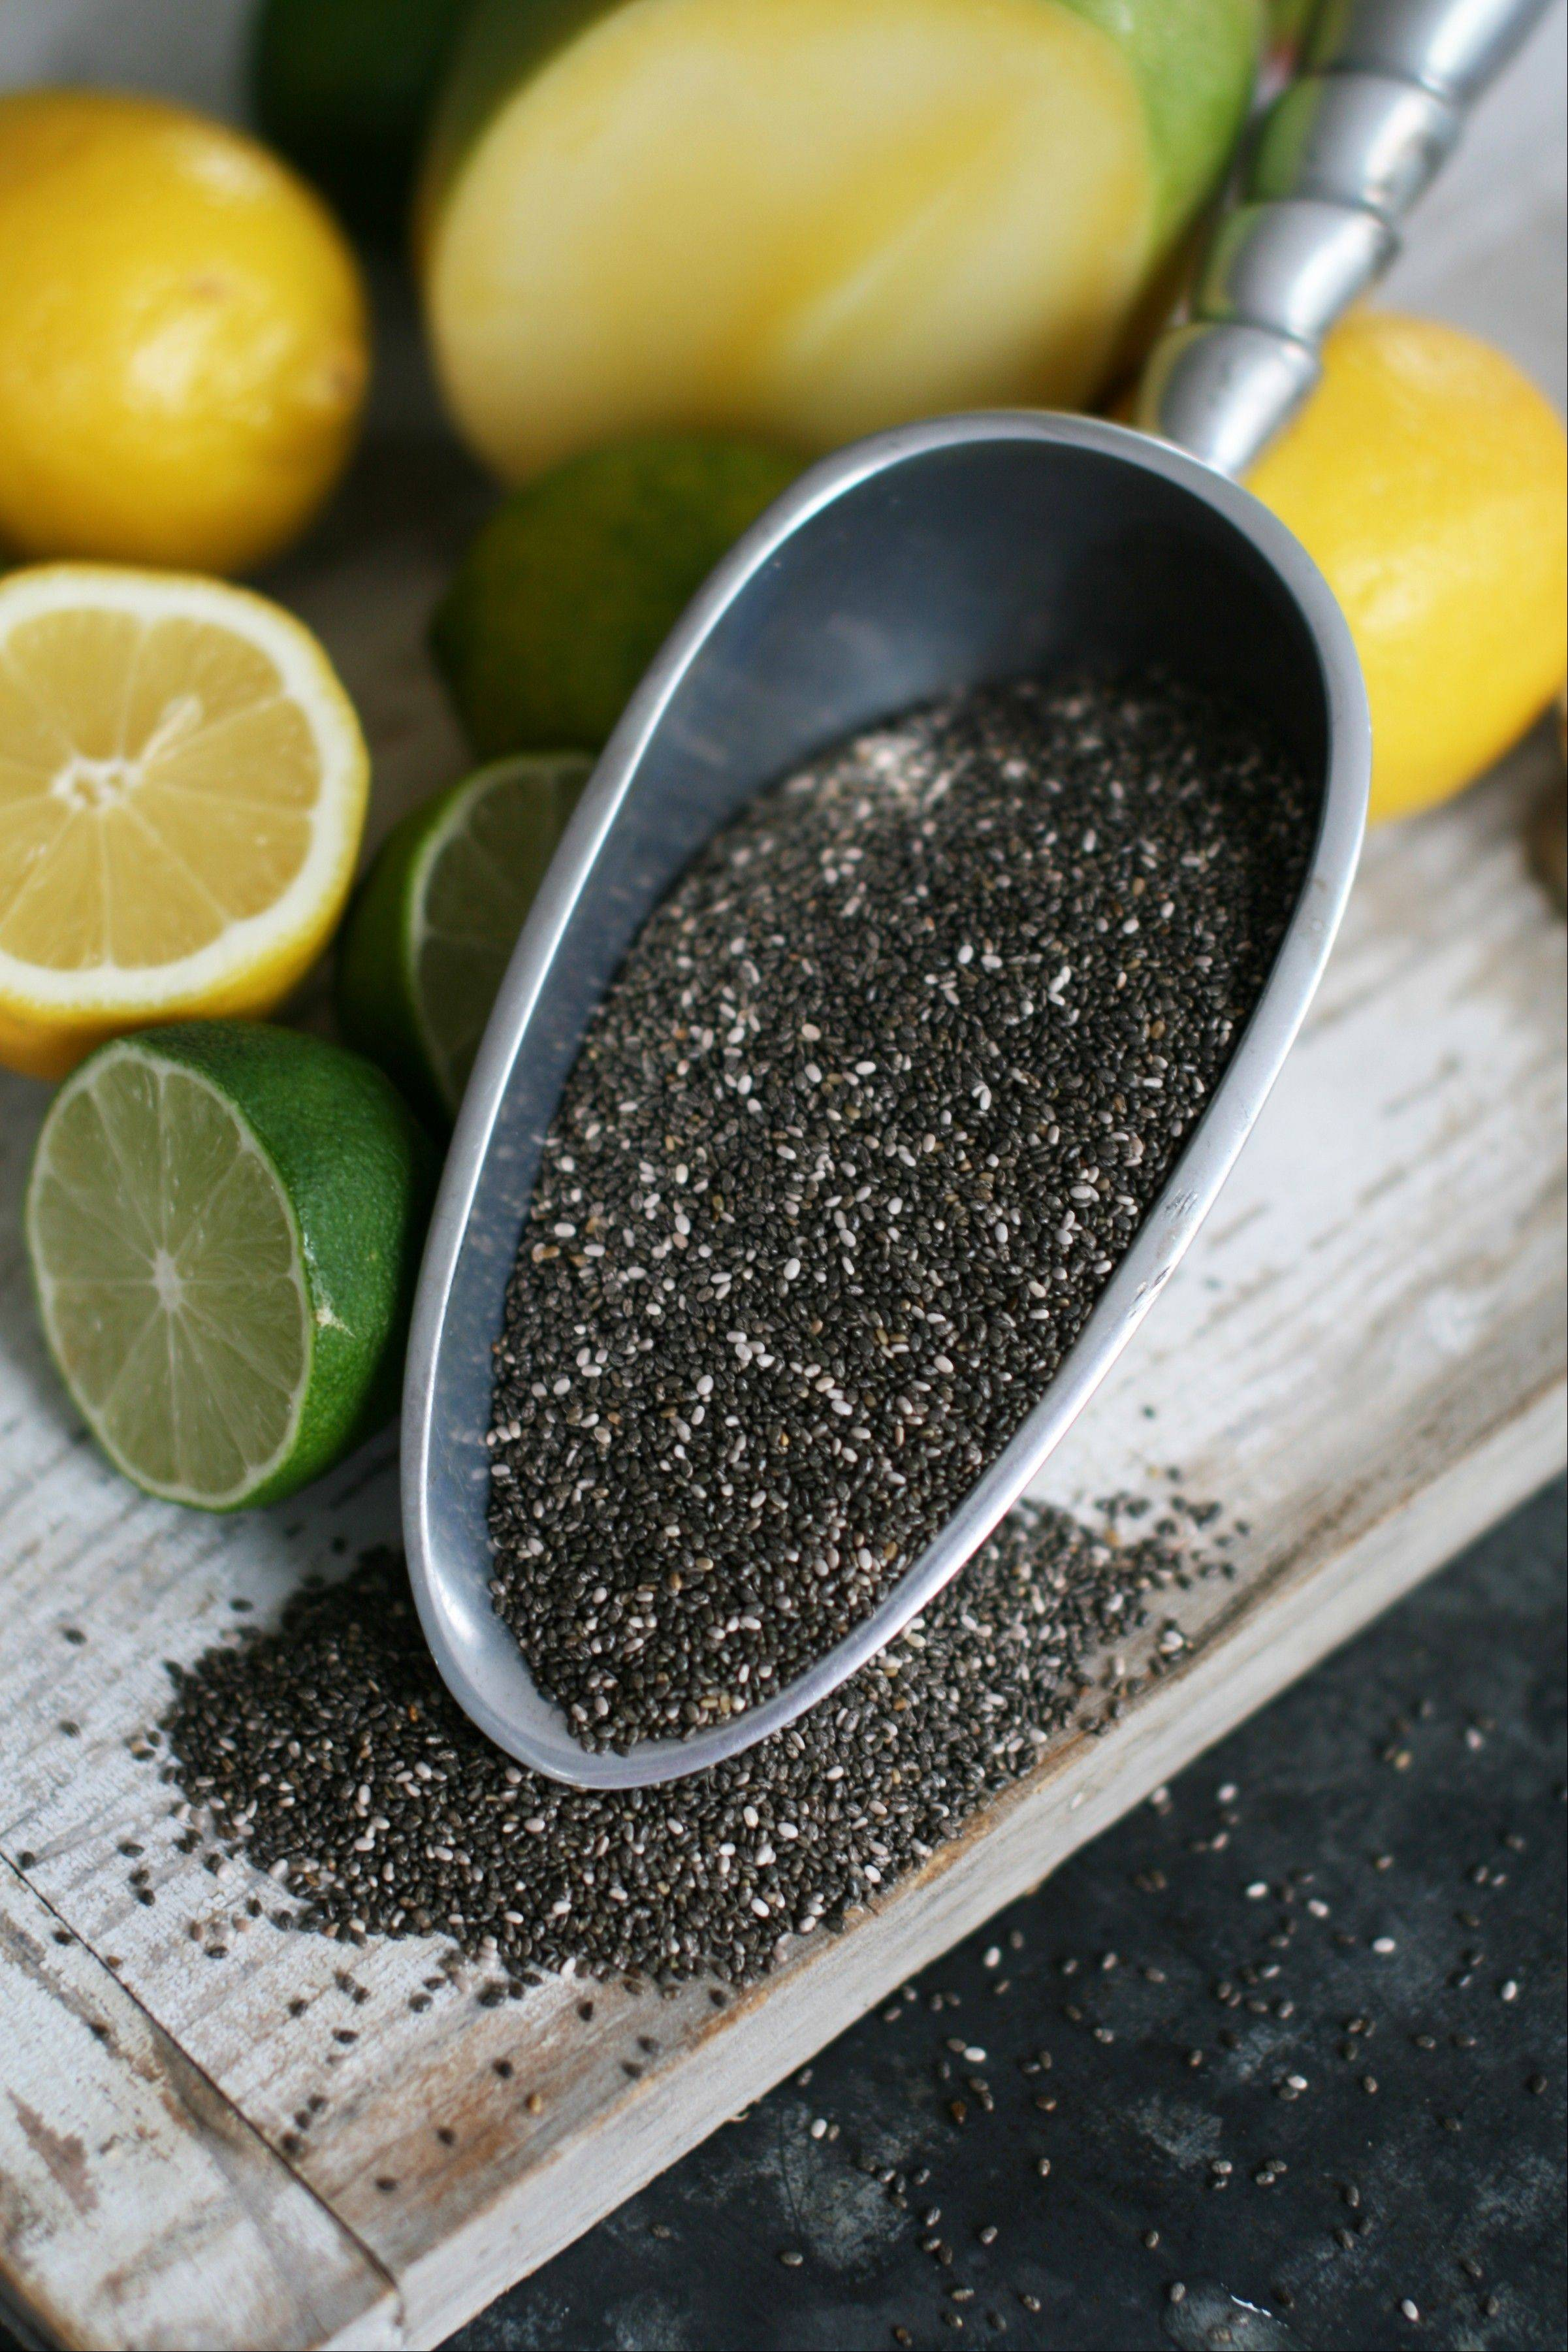 Chia seeds not just